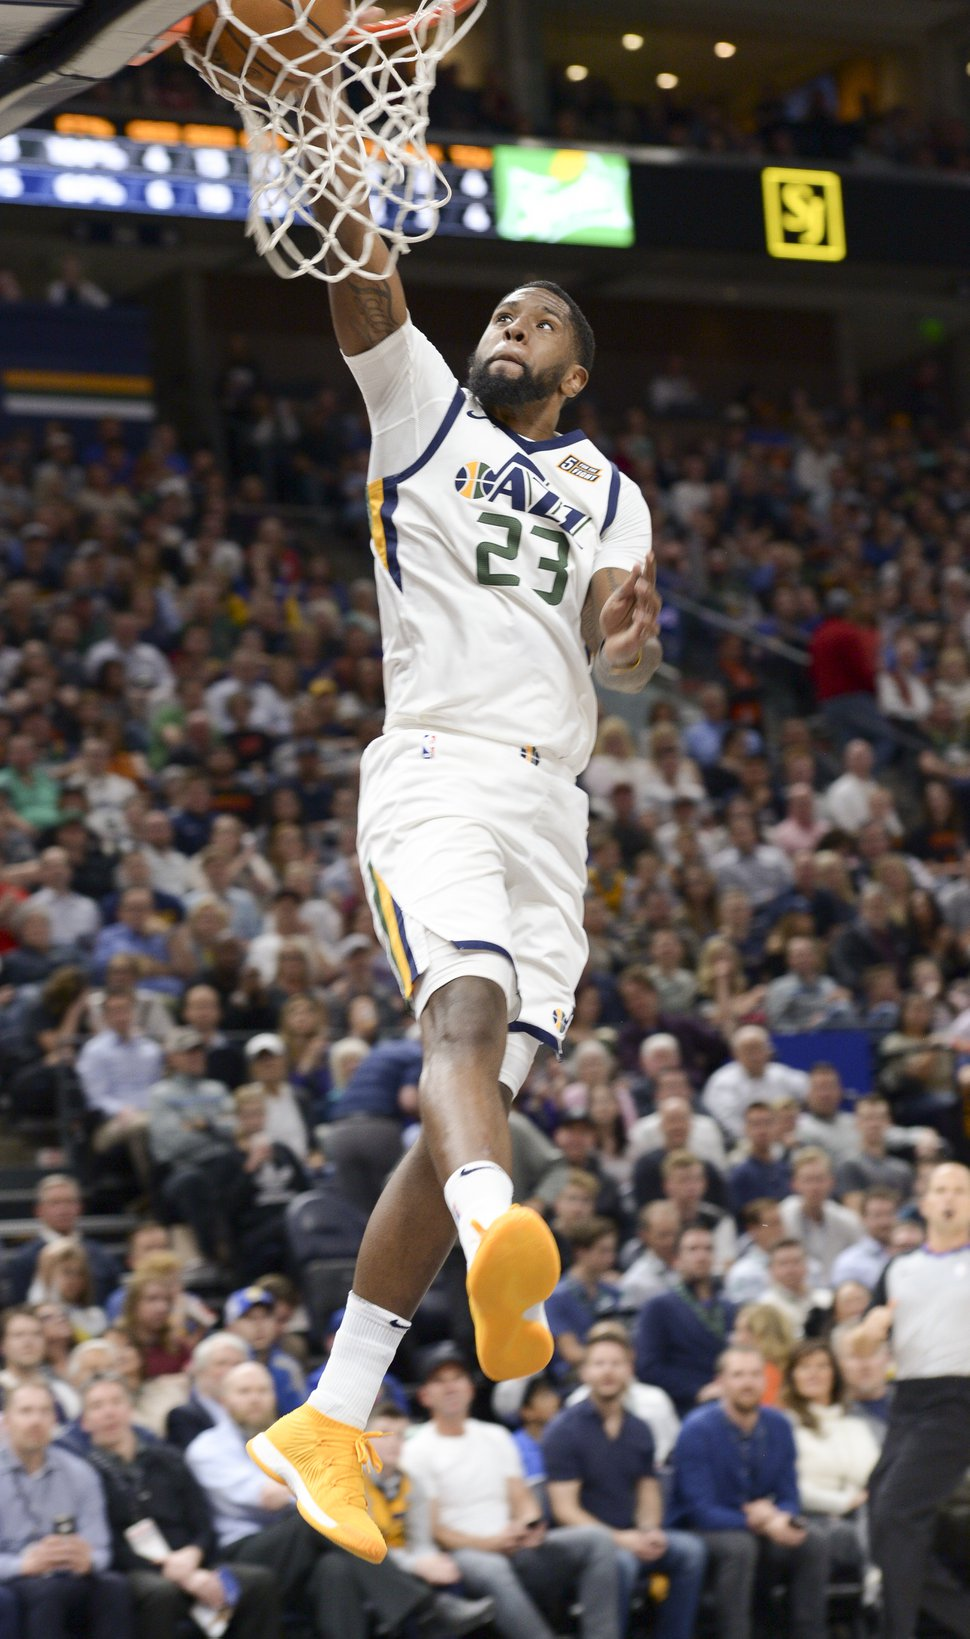 (Leah Hogsten | The Salt Lake Tribune) Utah Jazz forward Royce O'Neale (23) with the bucket. The Utah Jazz lead the Golden State Warriors 62-33 during their game, Tuesday, April 10, 2018 at the Vivant Smart Home Arena.